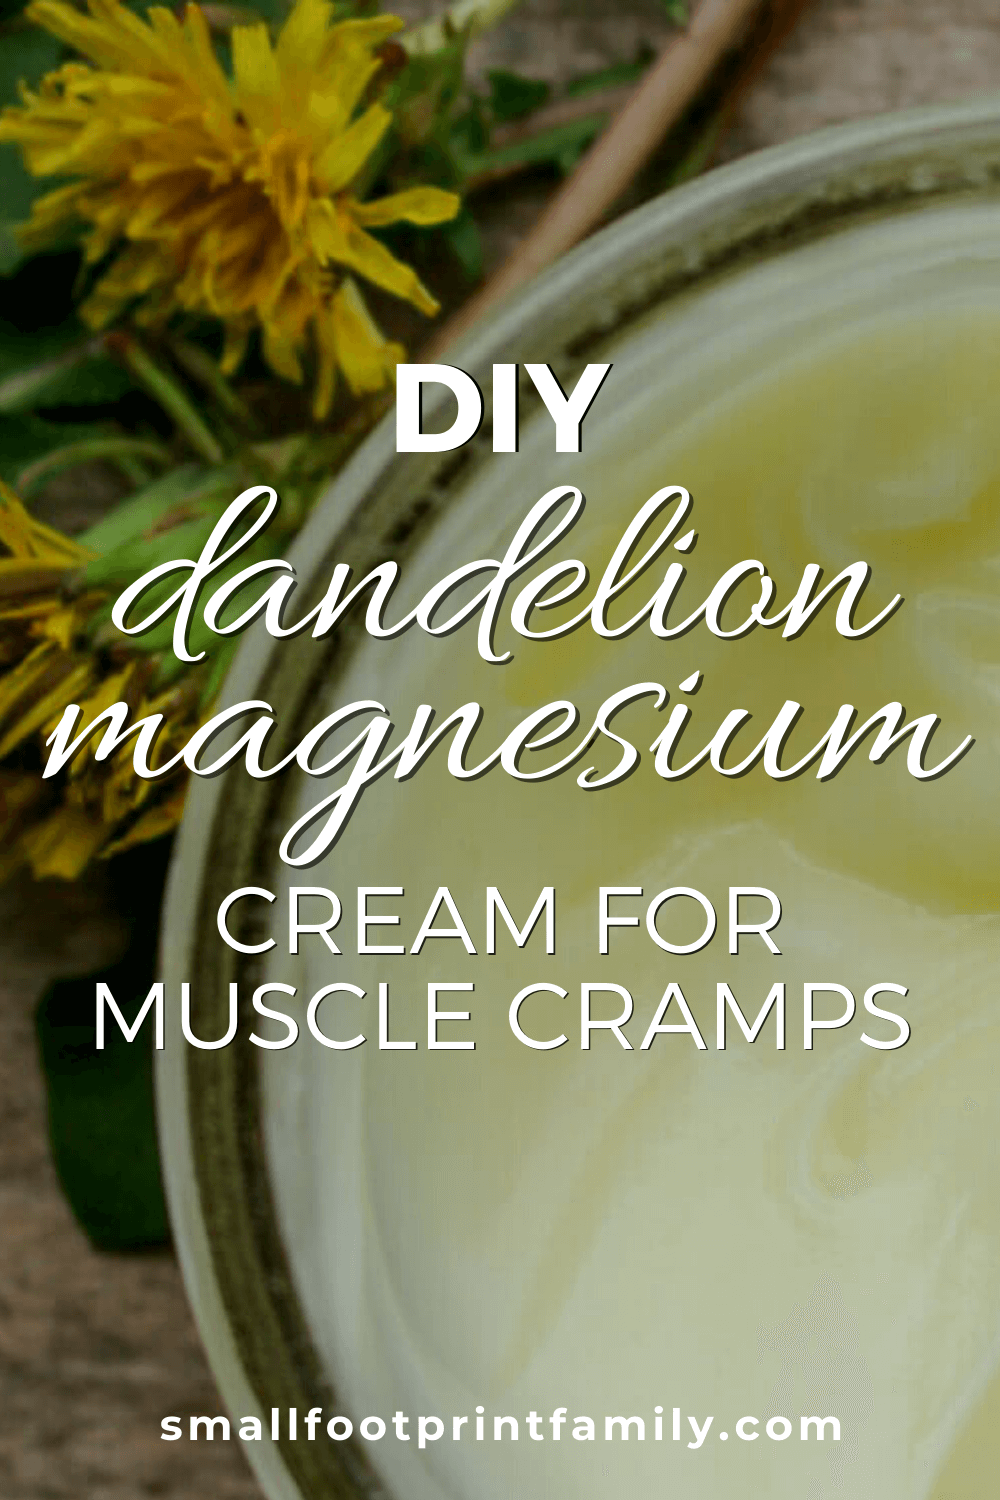 dandelion cream for muscle cramps in a glass jar